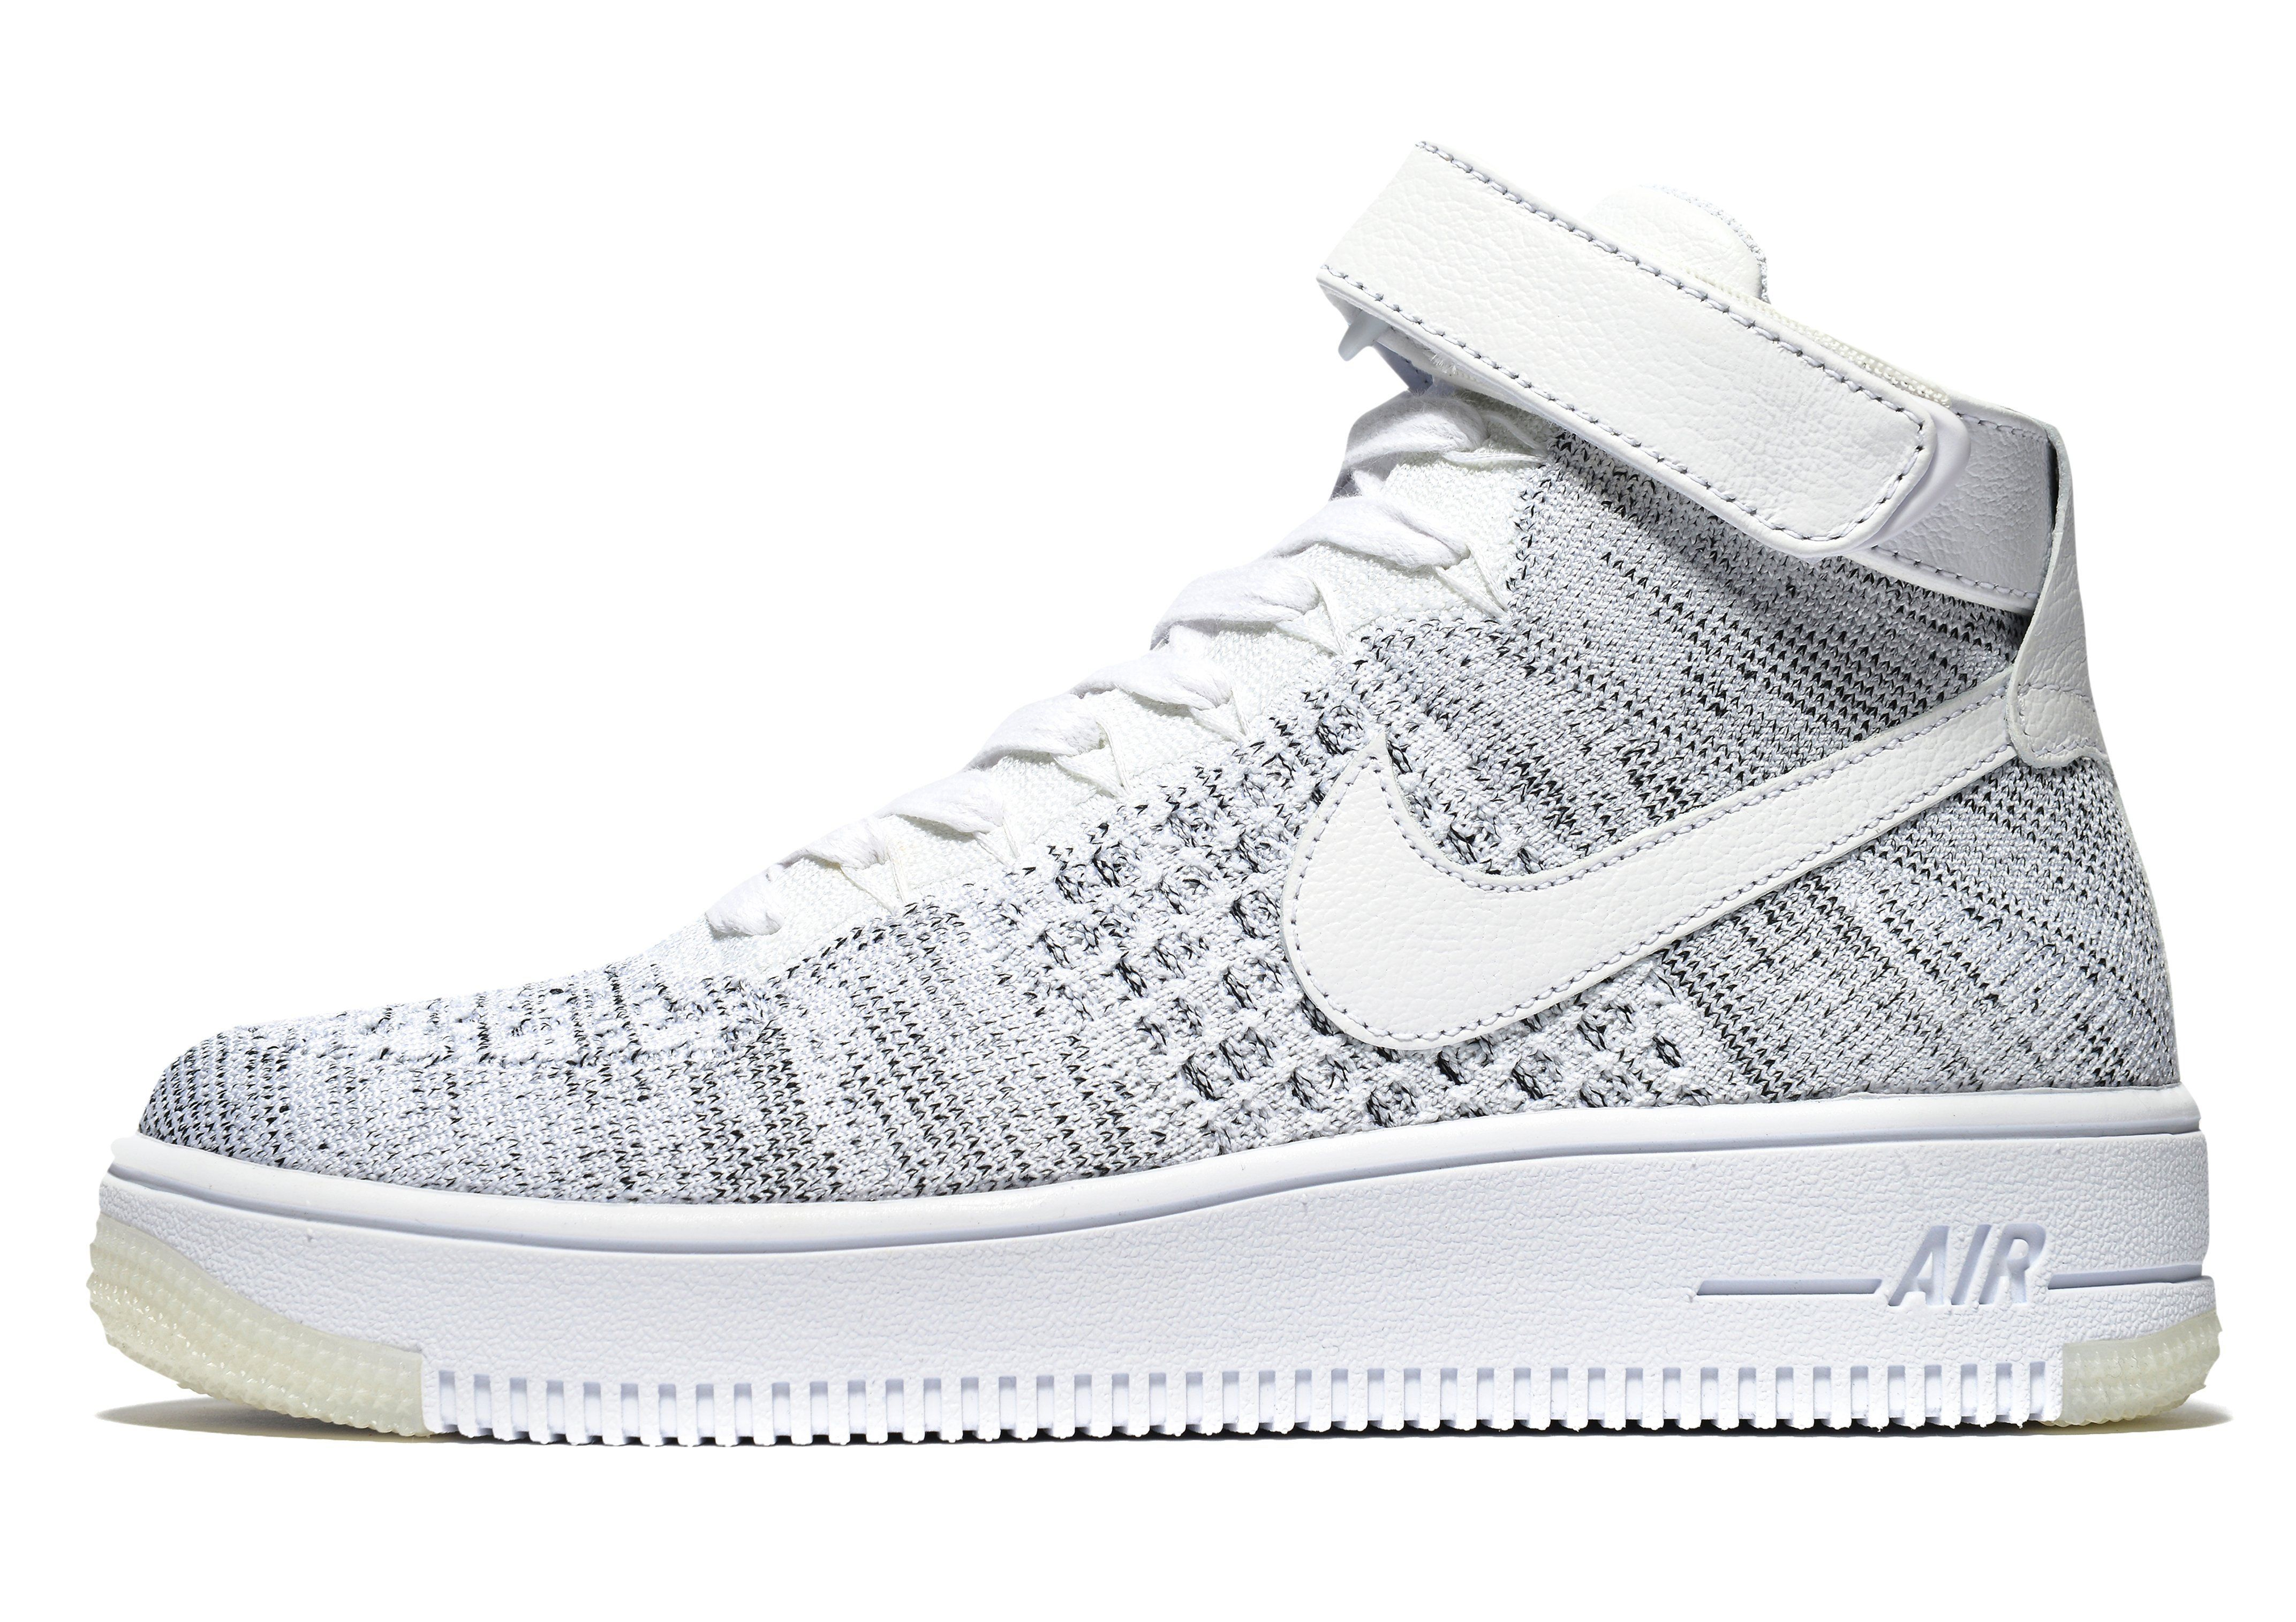 Nike Air Force 1 Mid Flyknit Women's - Shop online for Nike Air Force 1 Mid